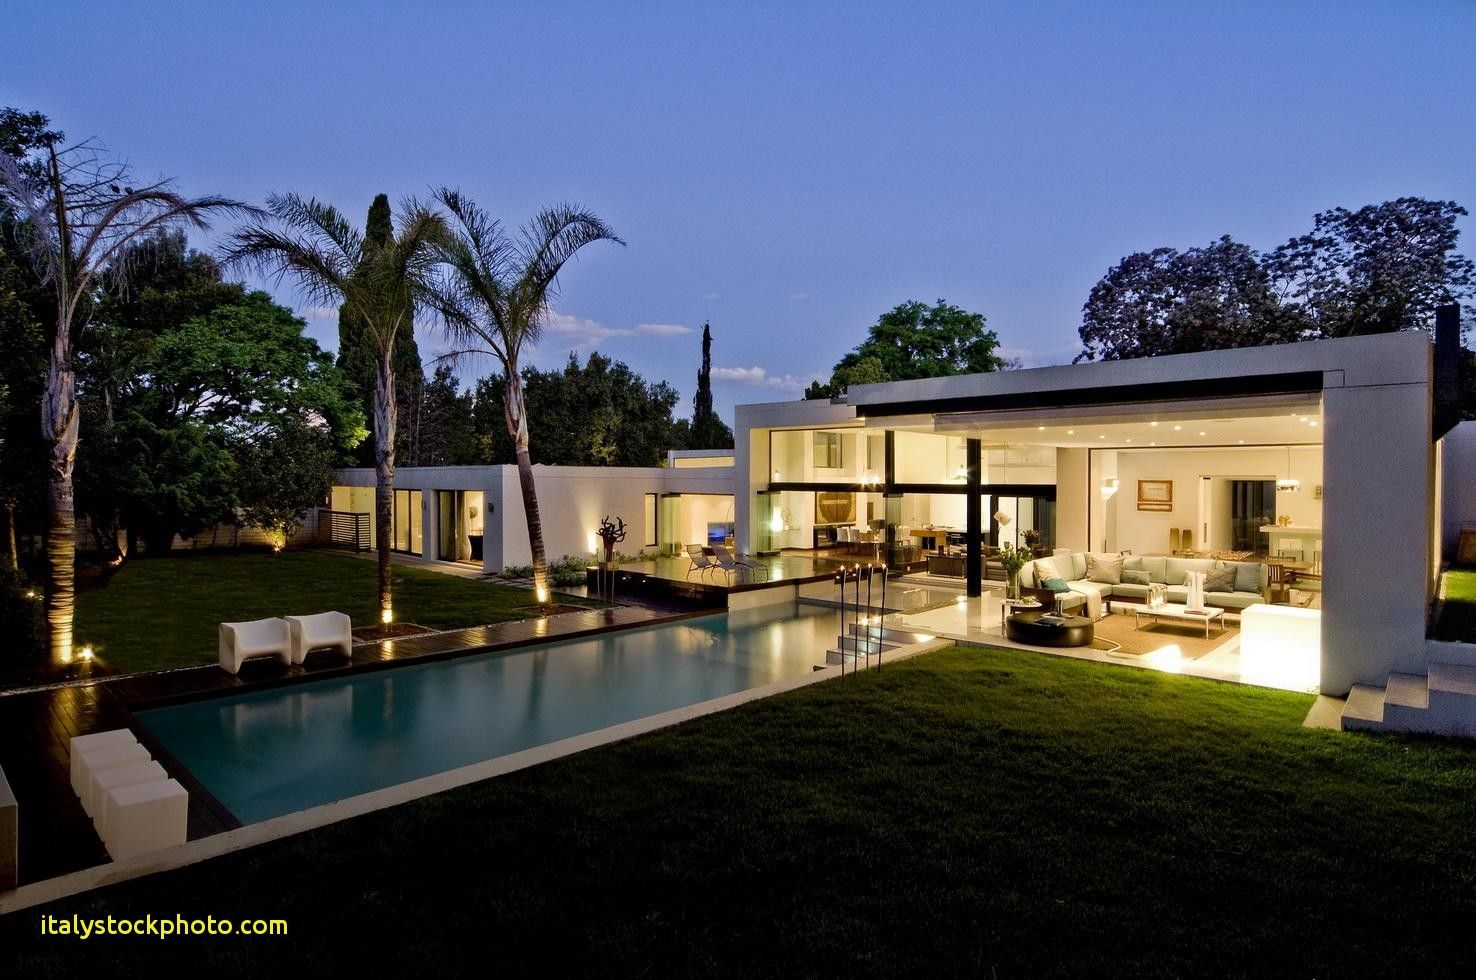 Single story modern house designs south africa for rent near me housedesign also rh pinterest